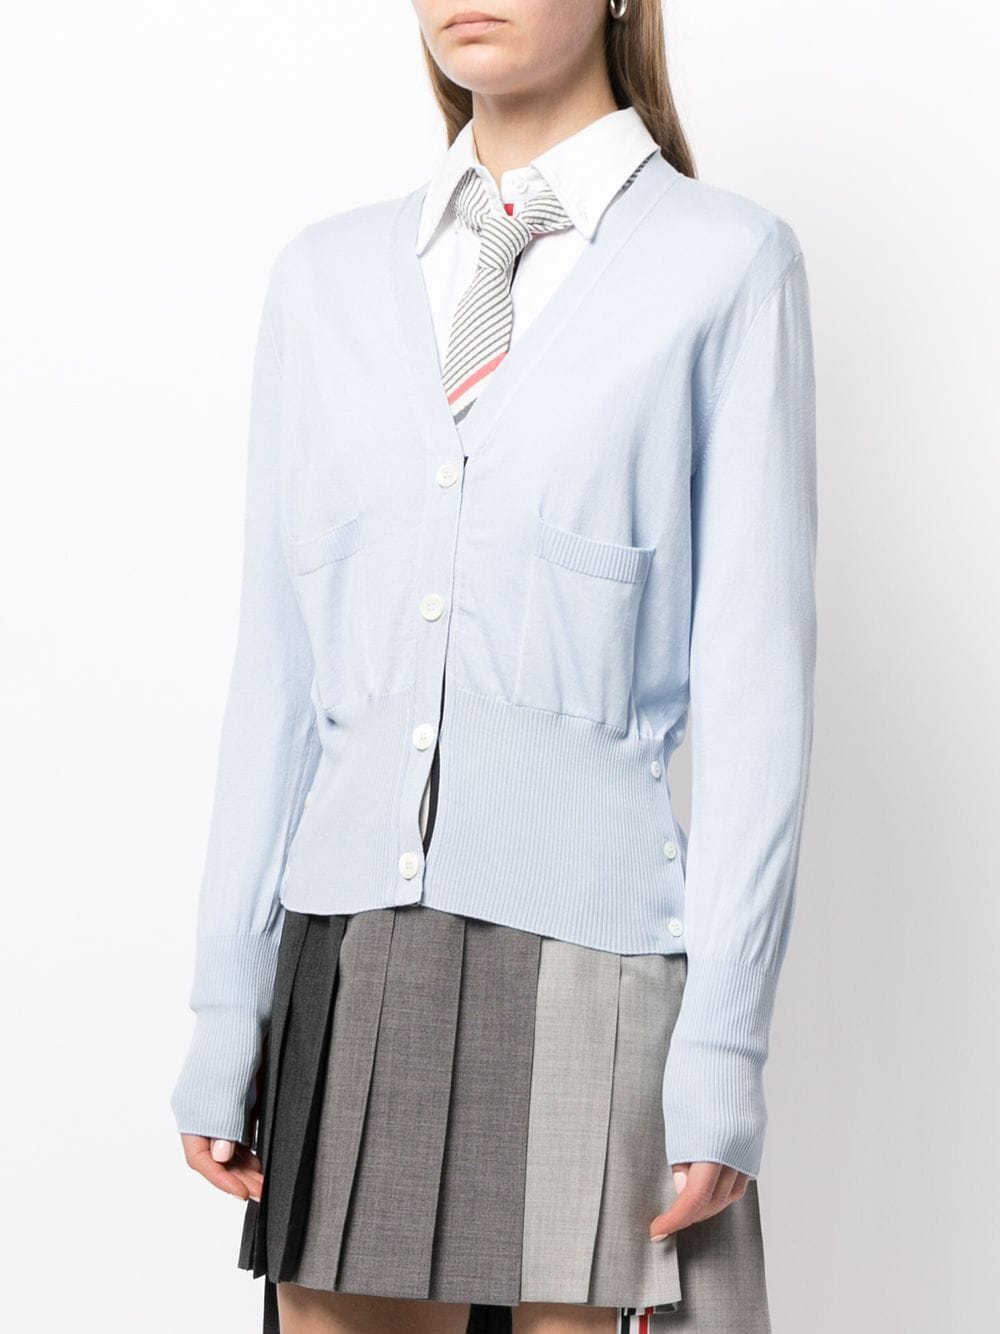 THOM BROWNE WOMEN RELAXED FIT V NECK CARDIGAN IN SILK/ COTTON BLEND W/ CB RWB INTARSIA STRIPE